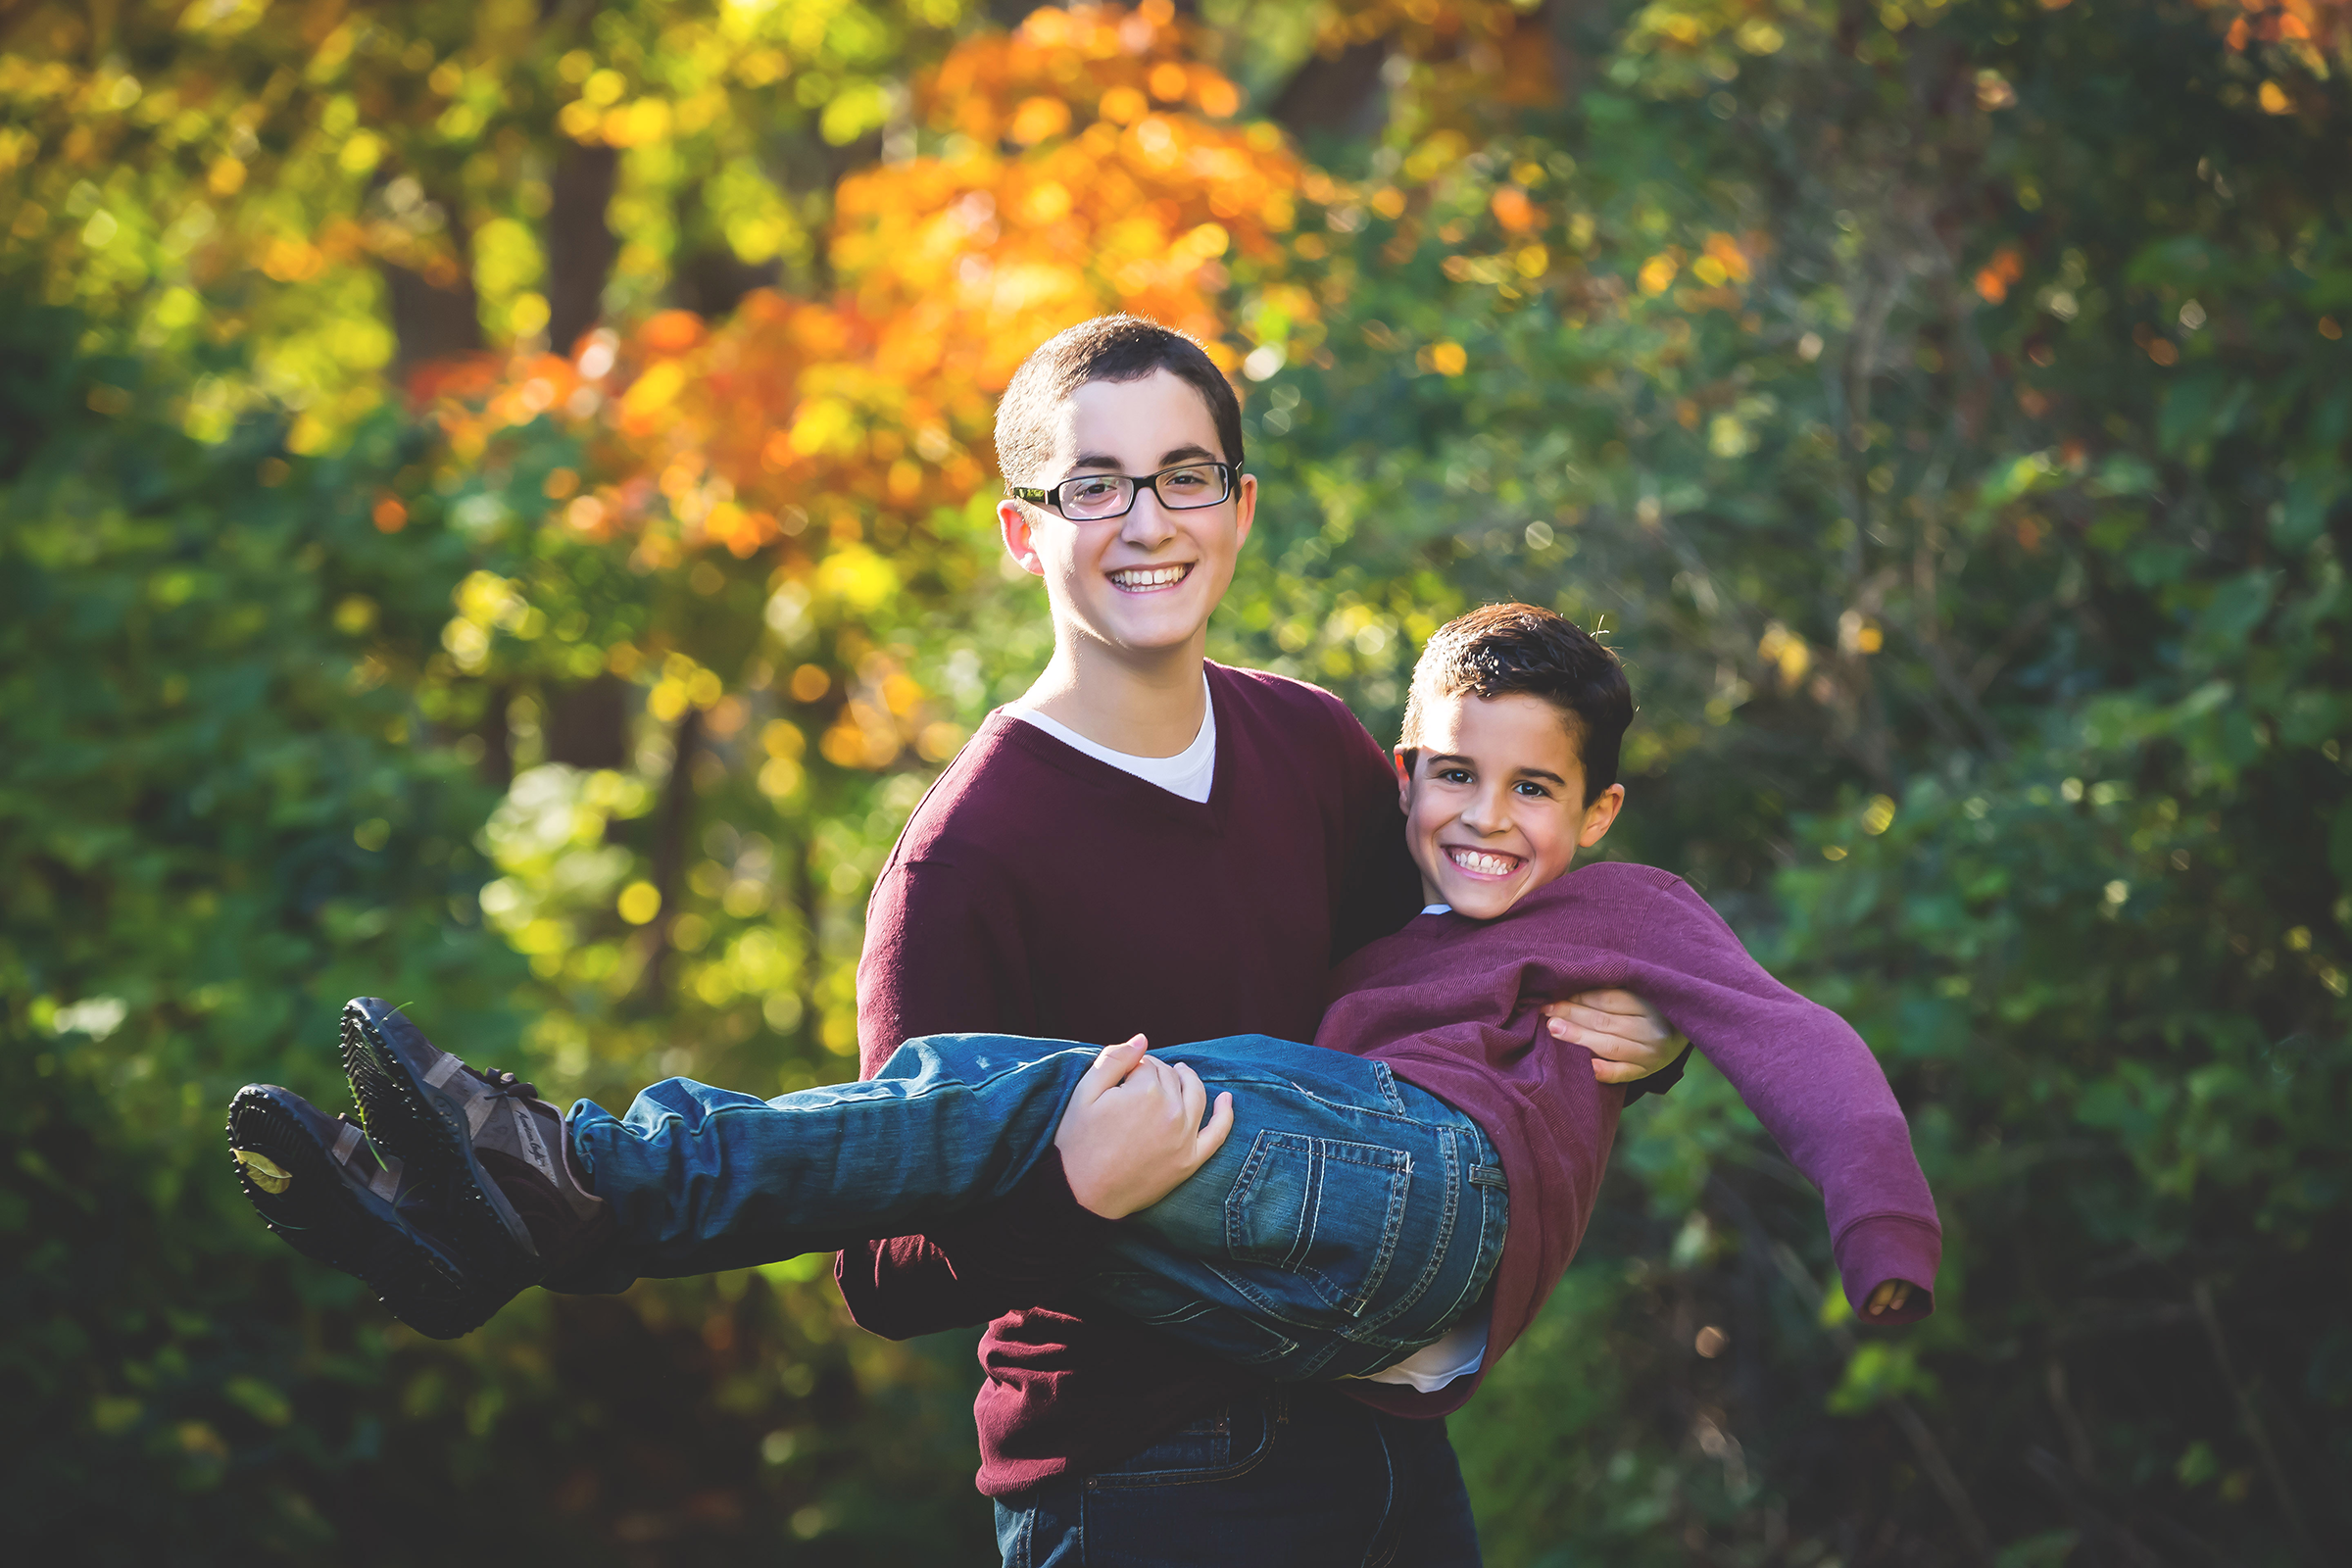 Family-Portraits-Hamilton-Stoney-Creek-Oakville-Burlington-Niagara-Photography-Moments-by-Lauren-Photographer-Lifestyle-Photo-Image7-1.png